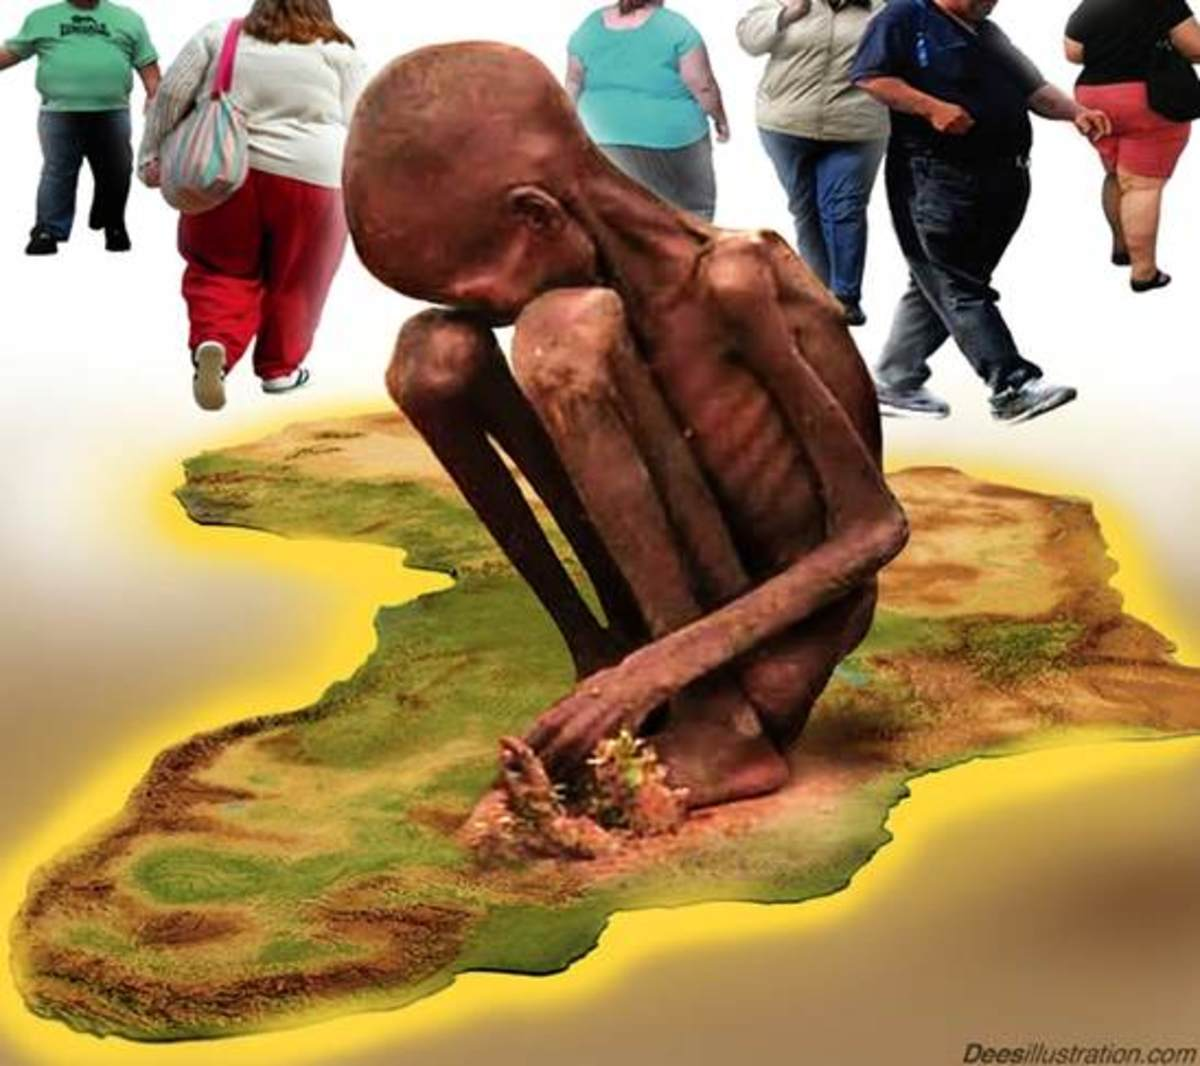 Many Black nations suffer from constant diseases outbreaks, need emergency food reliefs, suffer civil strife, genocide, chronic corruption, nonexistence infrastructure, constitution breaches, state failures; they suffered slavery, colonialism, neocol